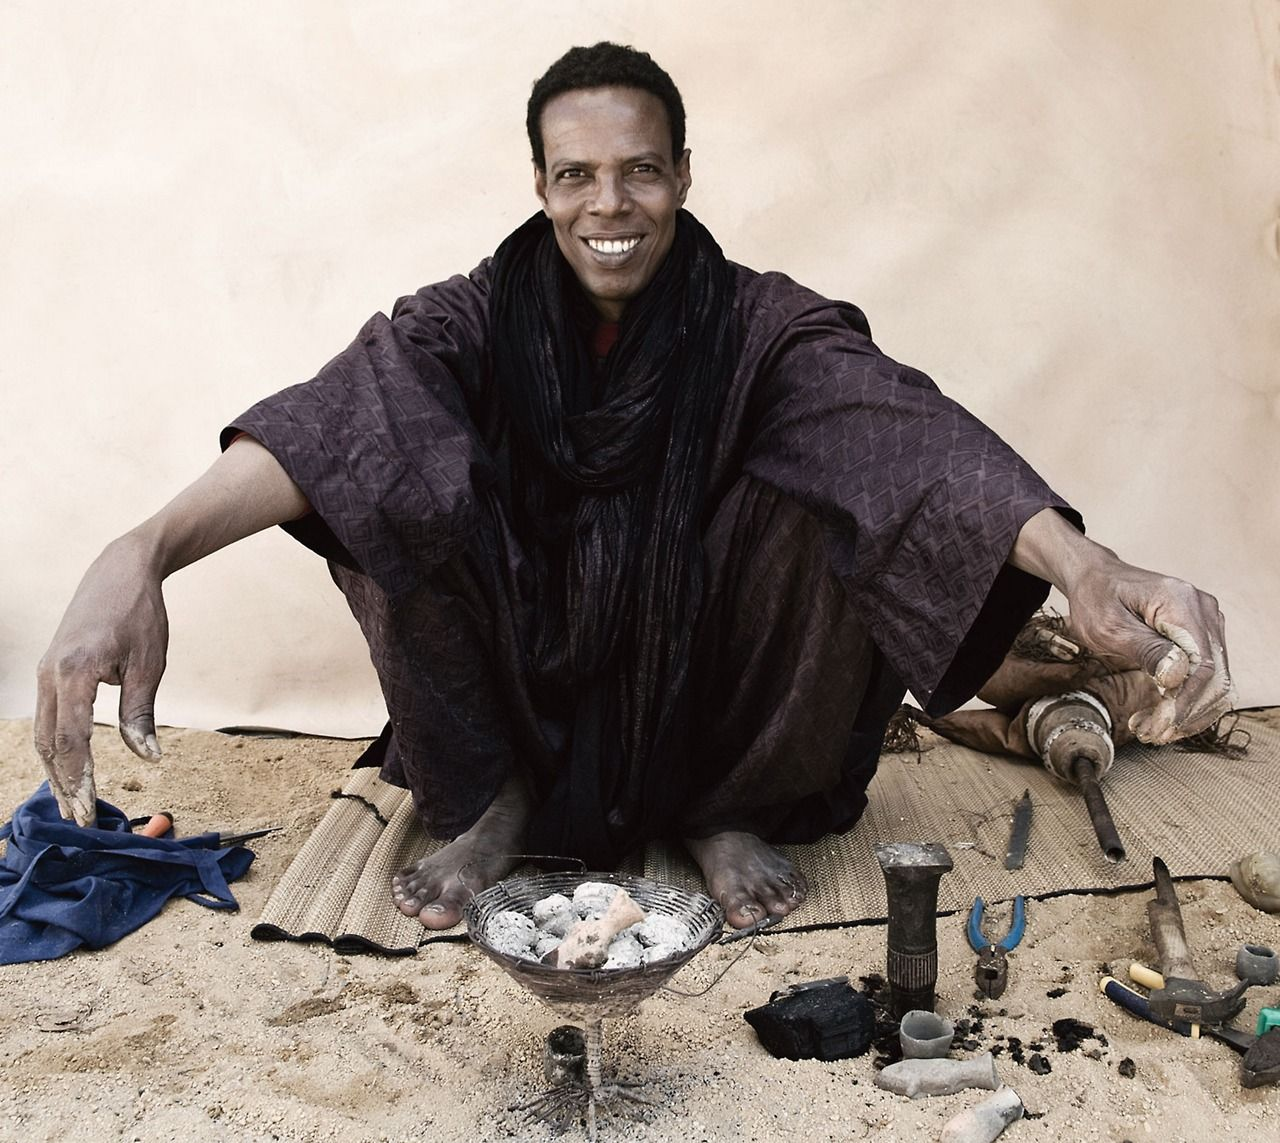 COVET  Tuareg Jewelry  The Tuareg are a semi-nomadic people of North Africa who are world-renowned for their gorgeous sterling silver jewelry. Photographed by Christian Peacock (via Jewelers of the Desert | HandEye)